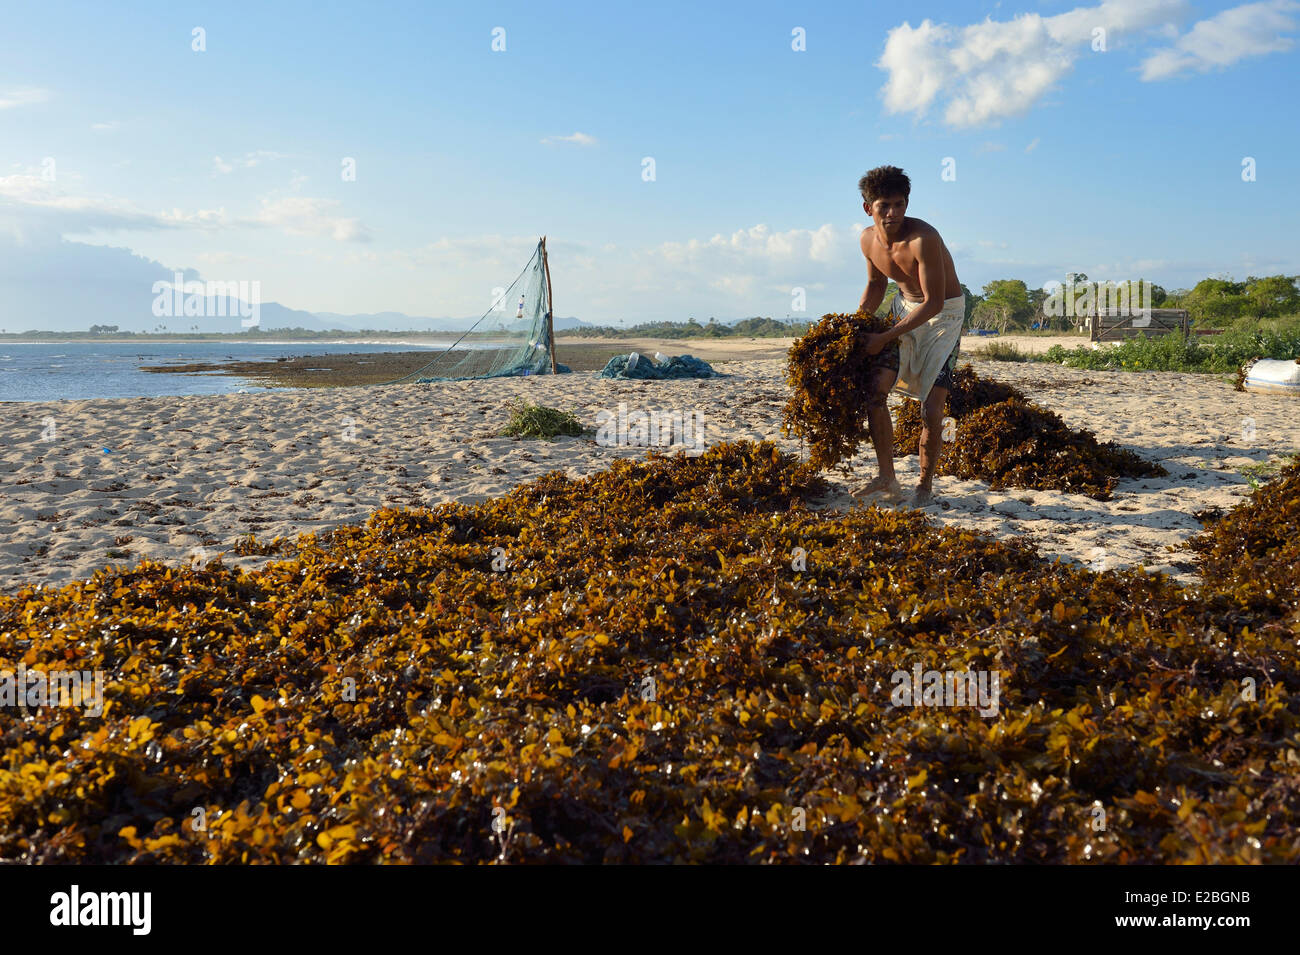 Indonesia, Sumbawa, seaweeds cultivation at Pantai Lakey, beach also famous for its surf breaks - Stock Image